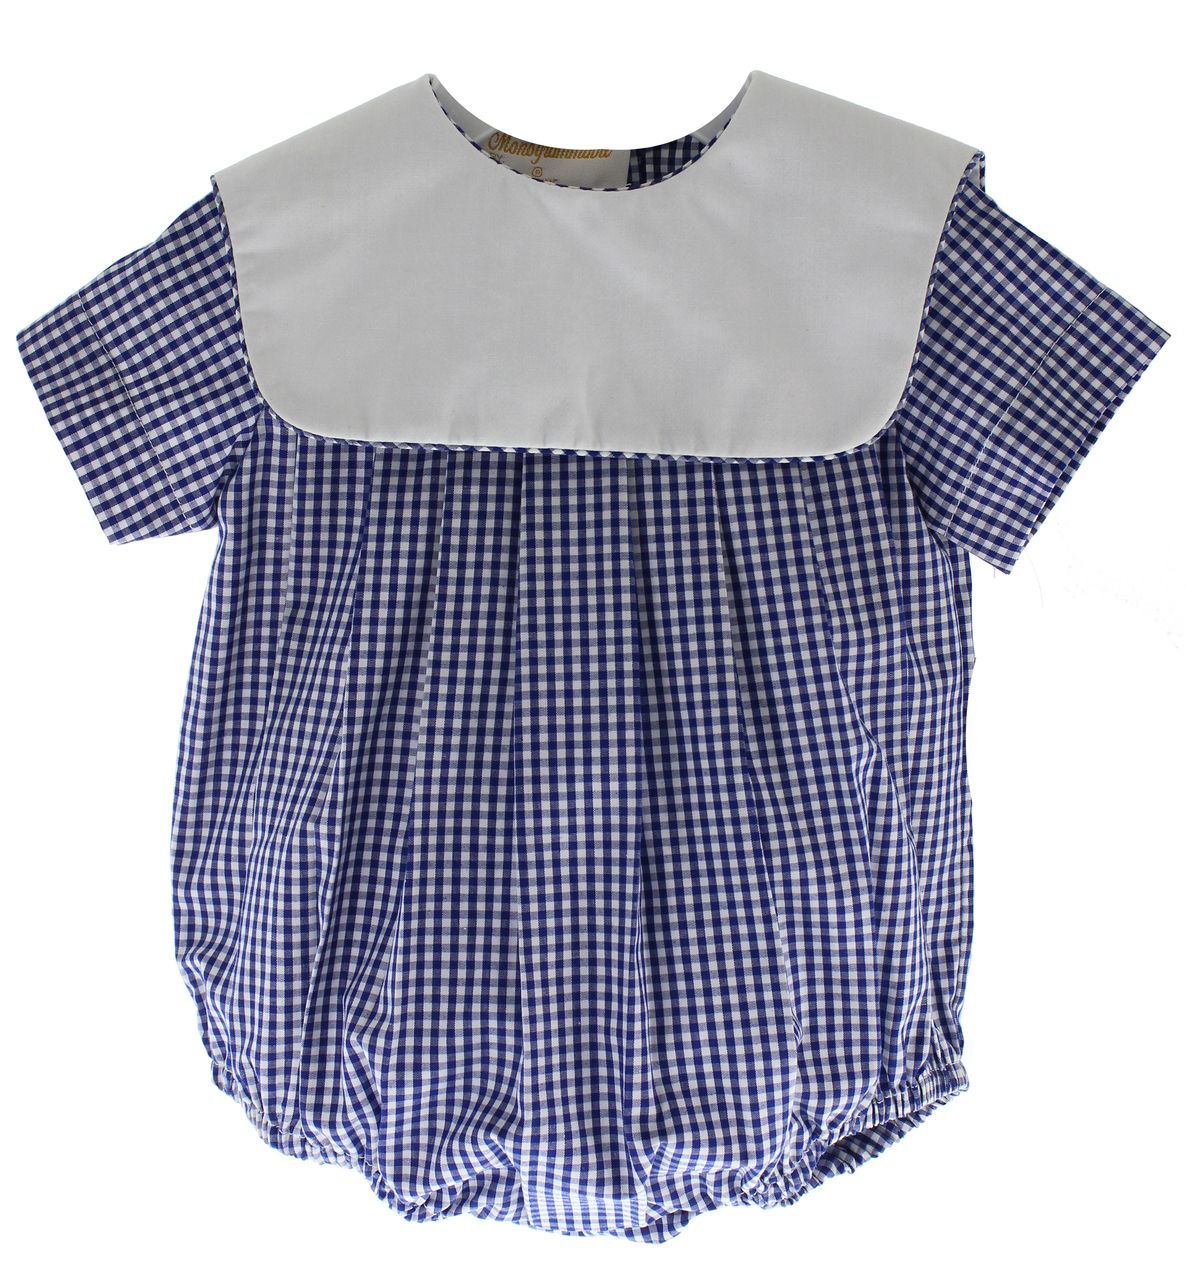 3fa1693887 Cute boys gingham bubble outfit with square bib collar that can be  monogrammed. Great personalized